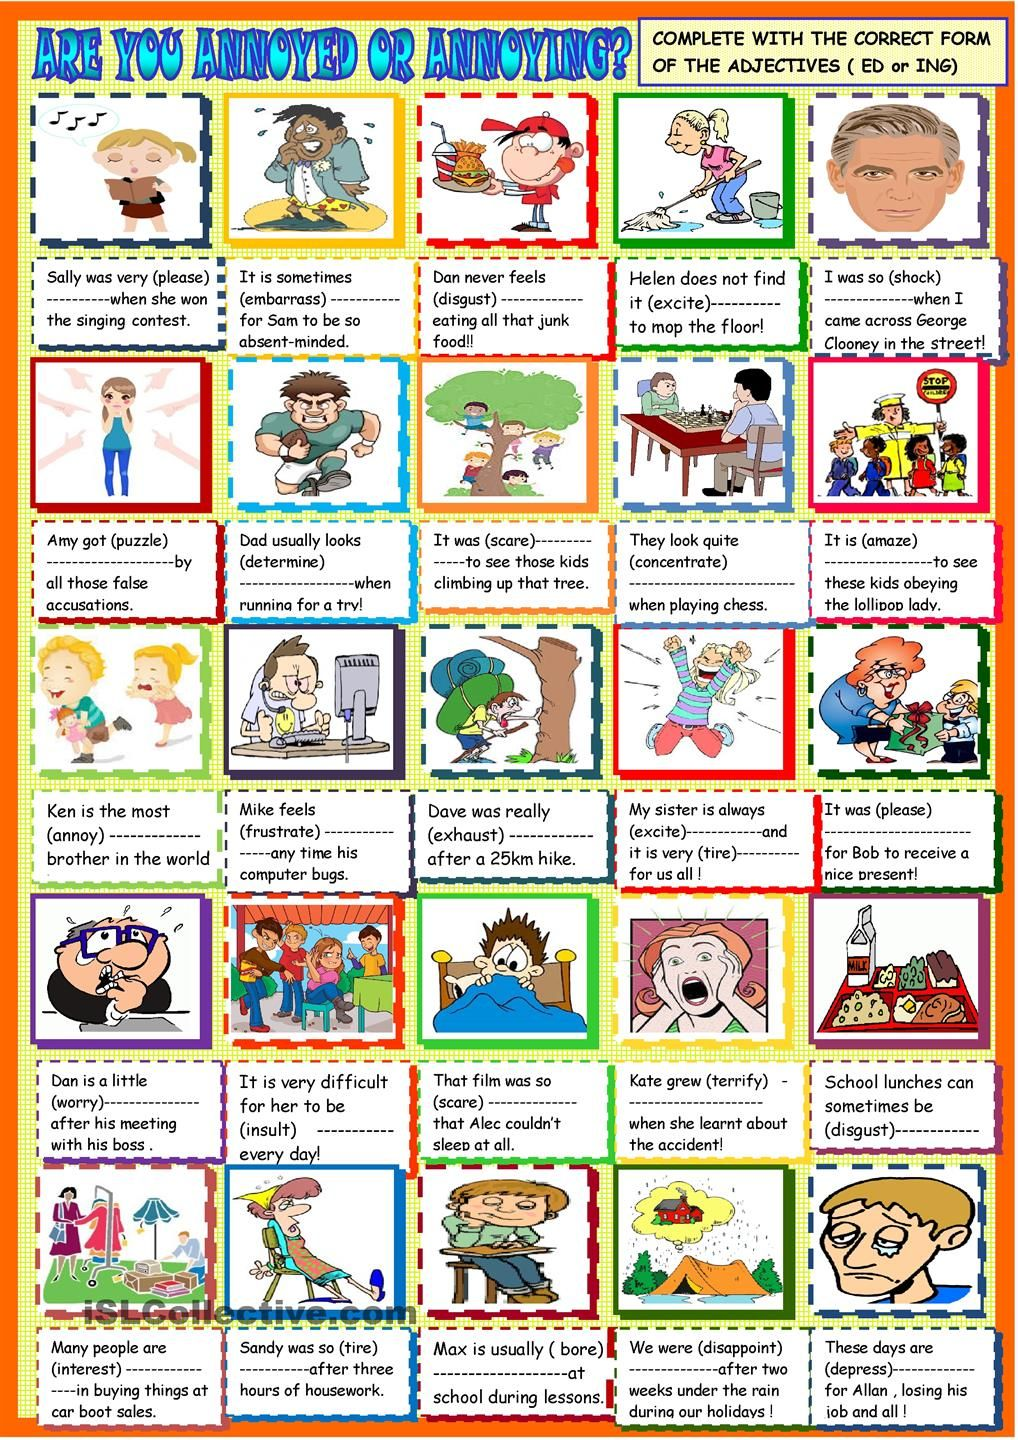 Are you annoyed or annoying:ED ING participial adjectives